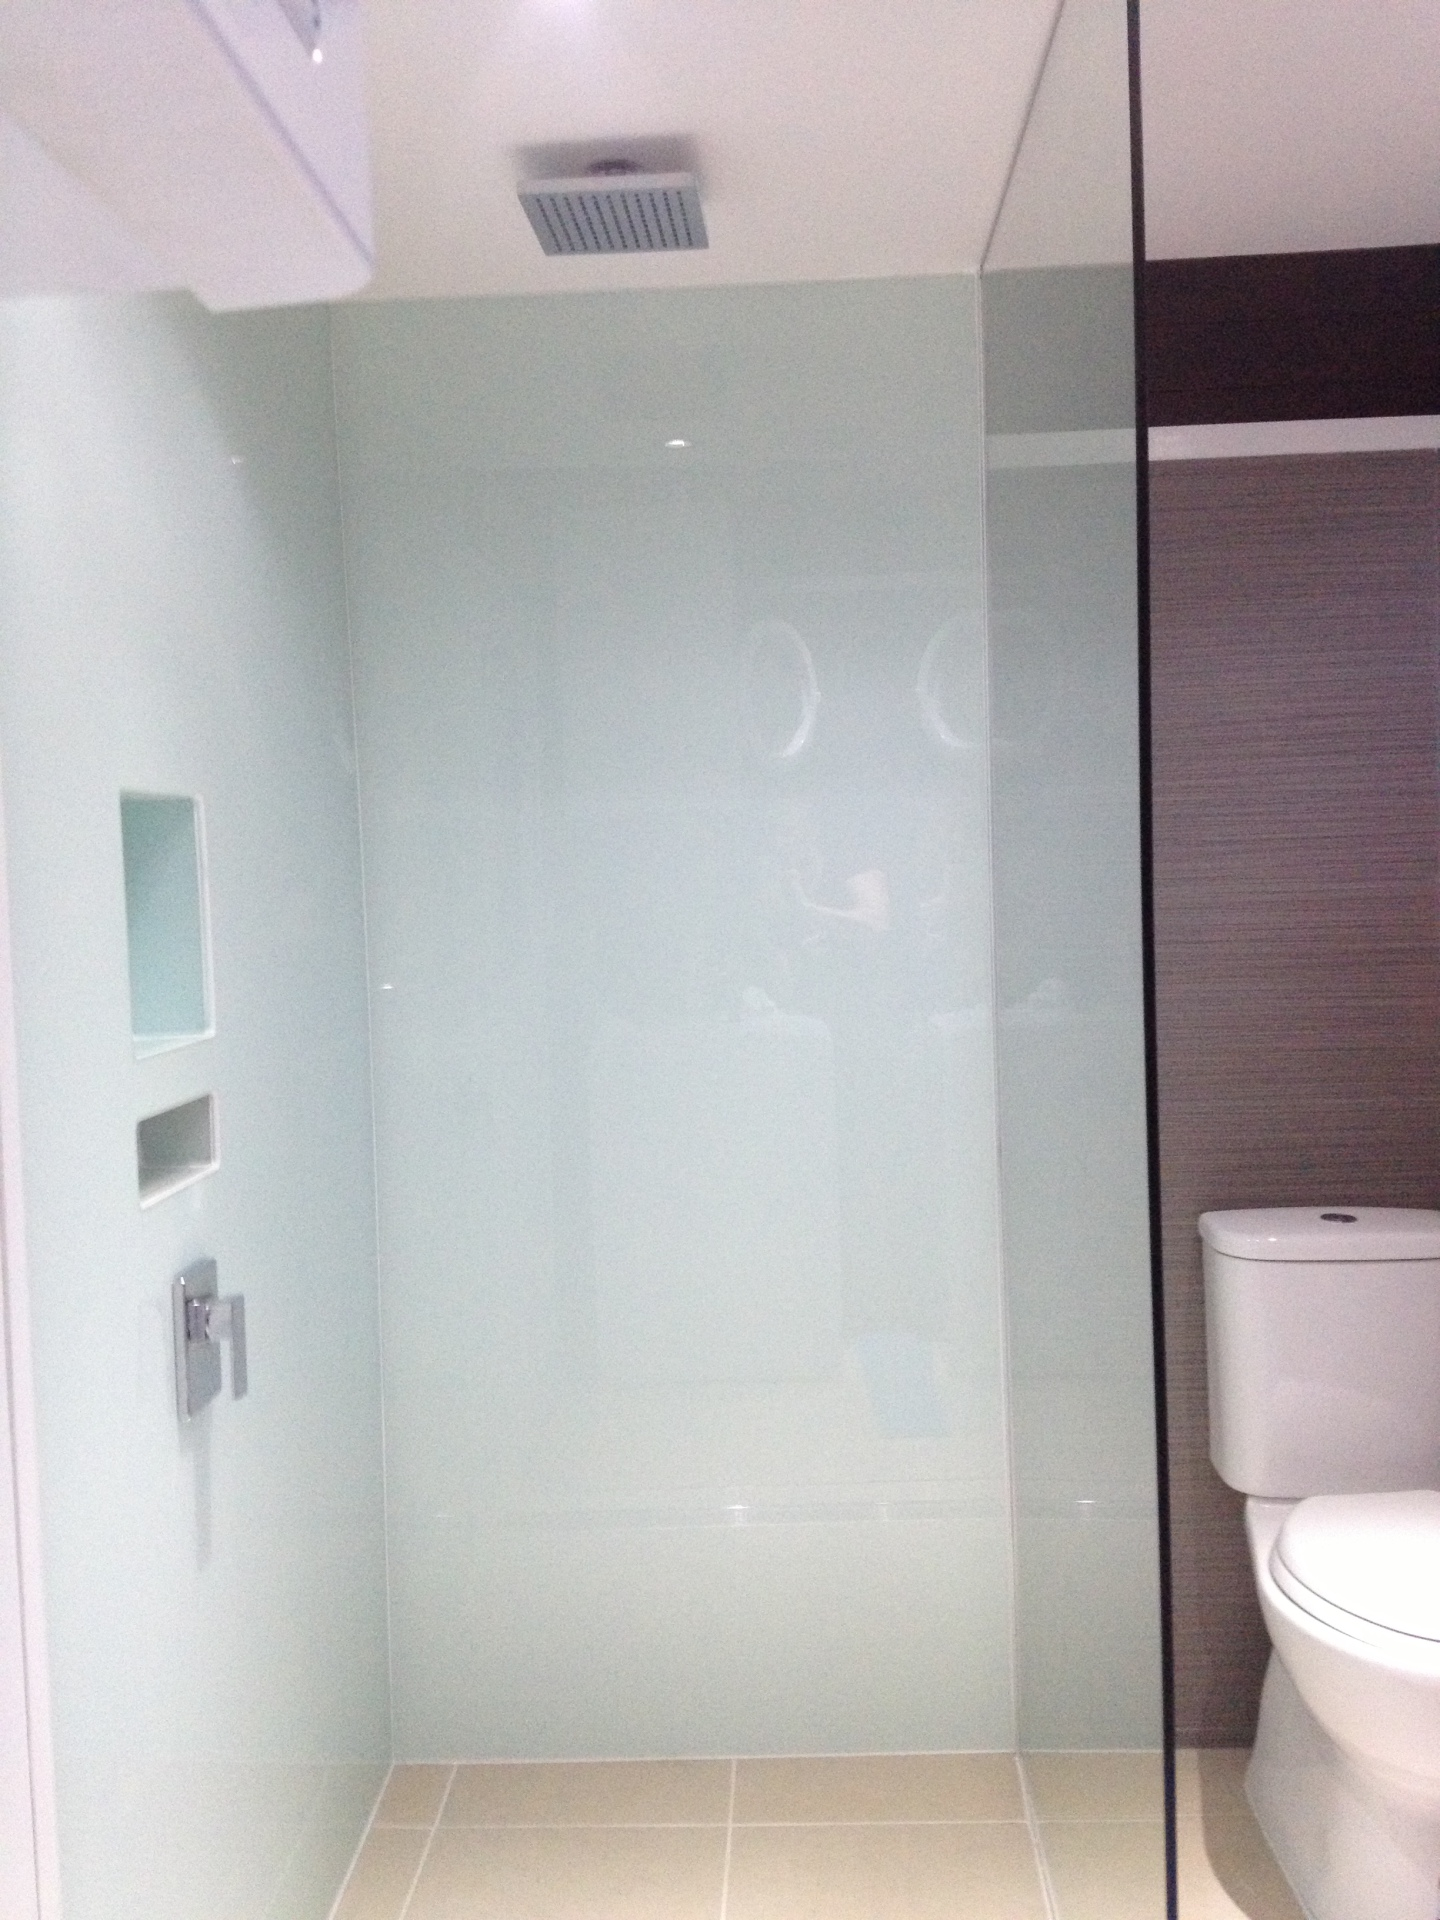 10mm glass panel